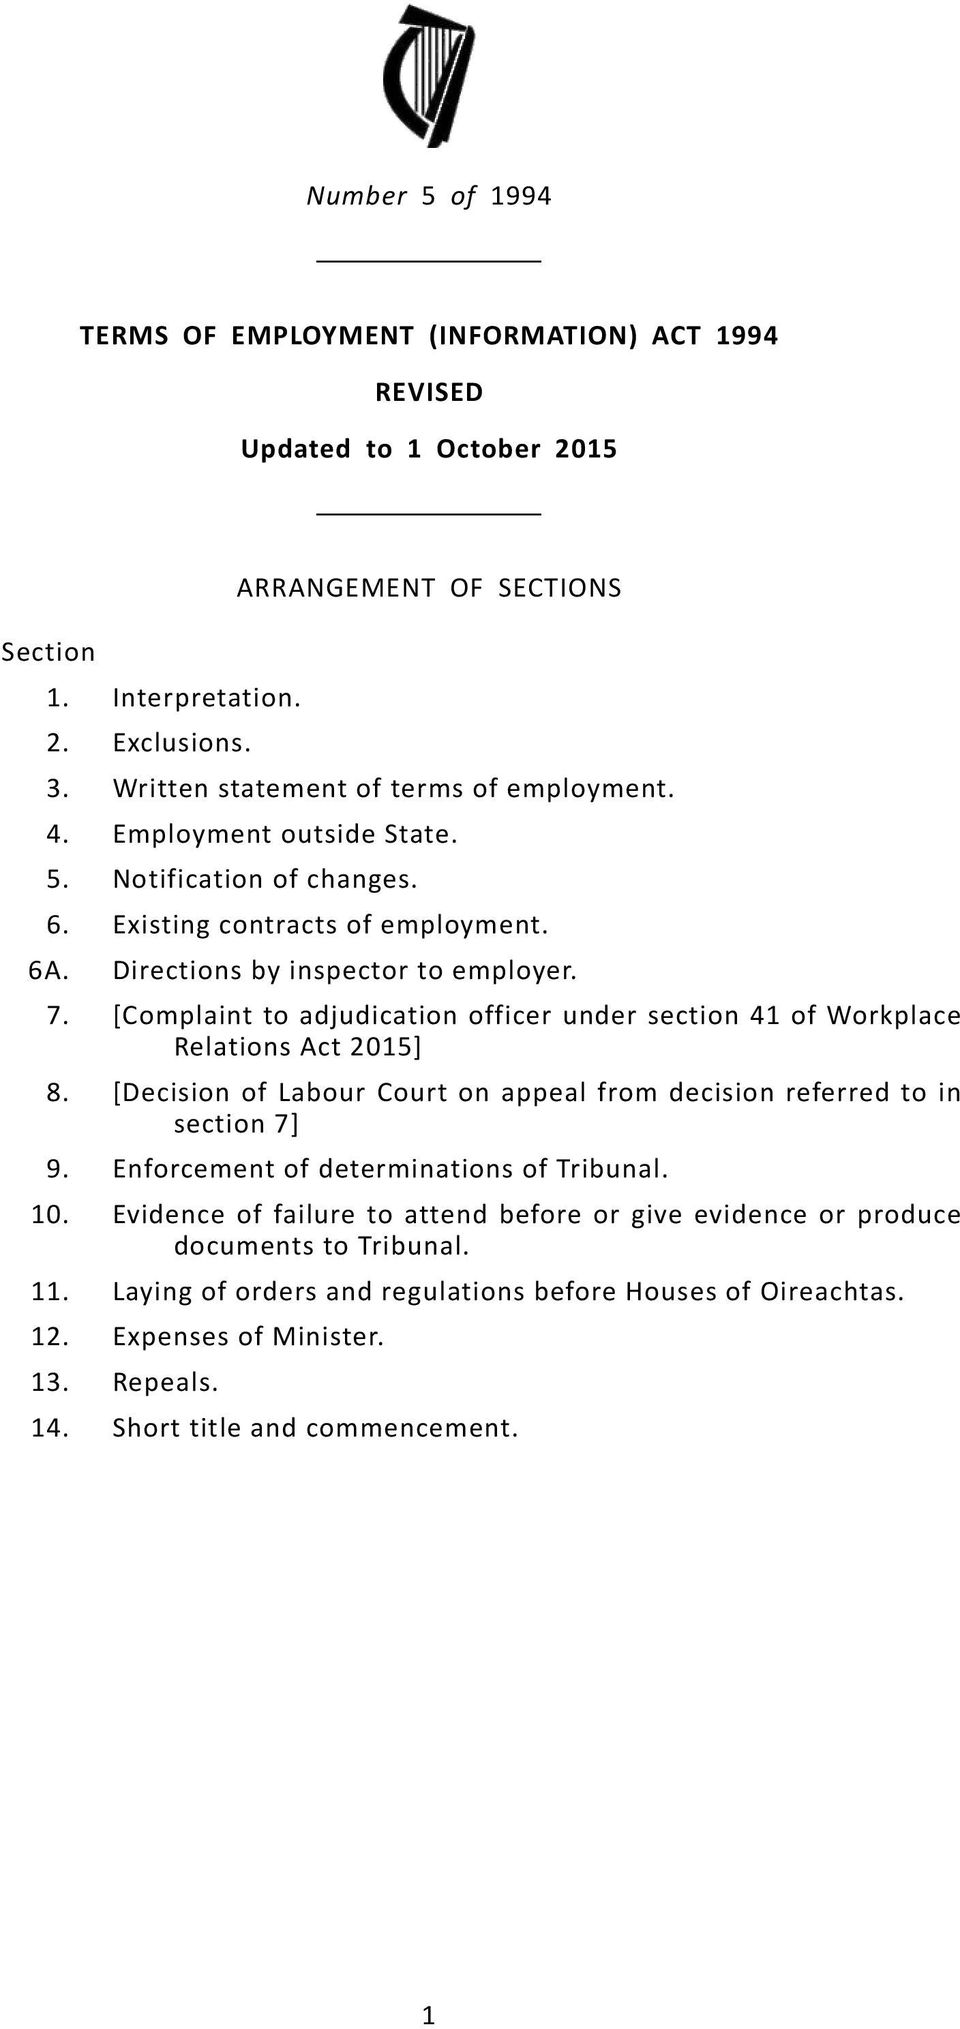 [Complaint to adjudication officer under section 41 of Workplace Relations Act 2015] [Decision of Labour Court on appeal from decision referred to in section 7] Enforcement of determinations of